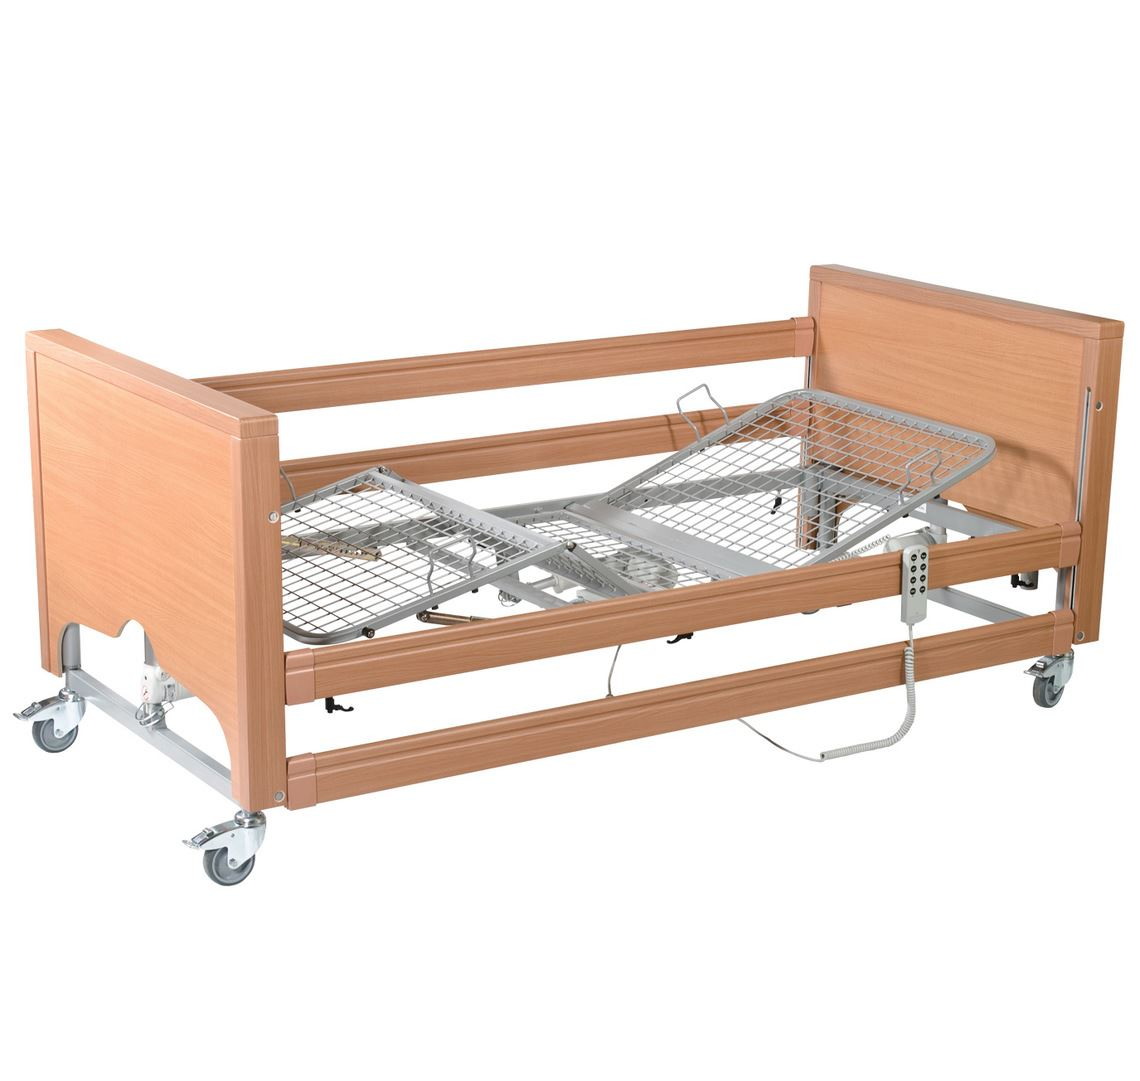 Picture of Casa Med Classic FS Low Profiling Bed - Beech with Metal Mesh (No Side Rails)